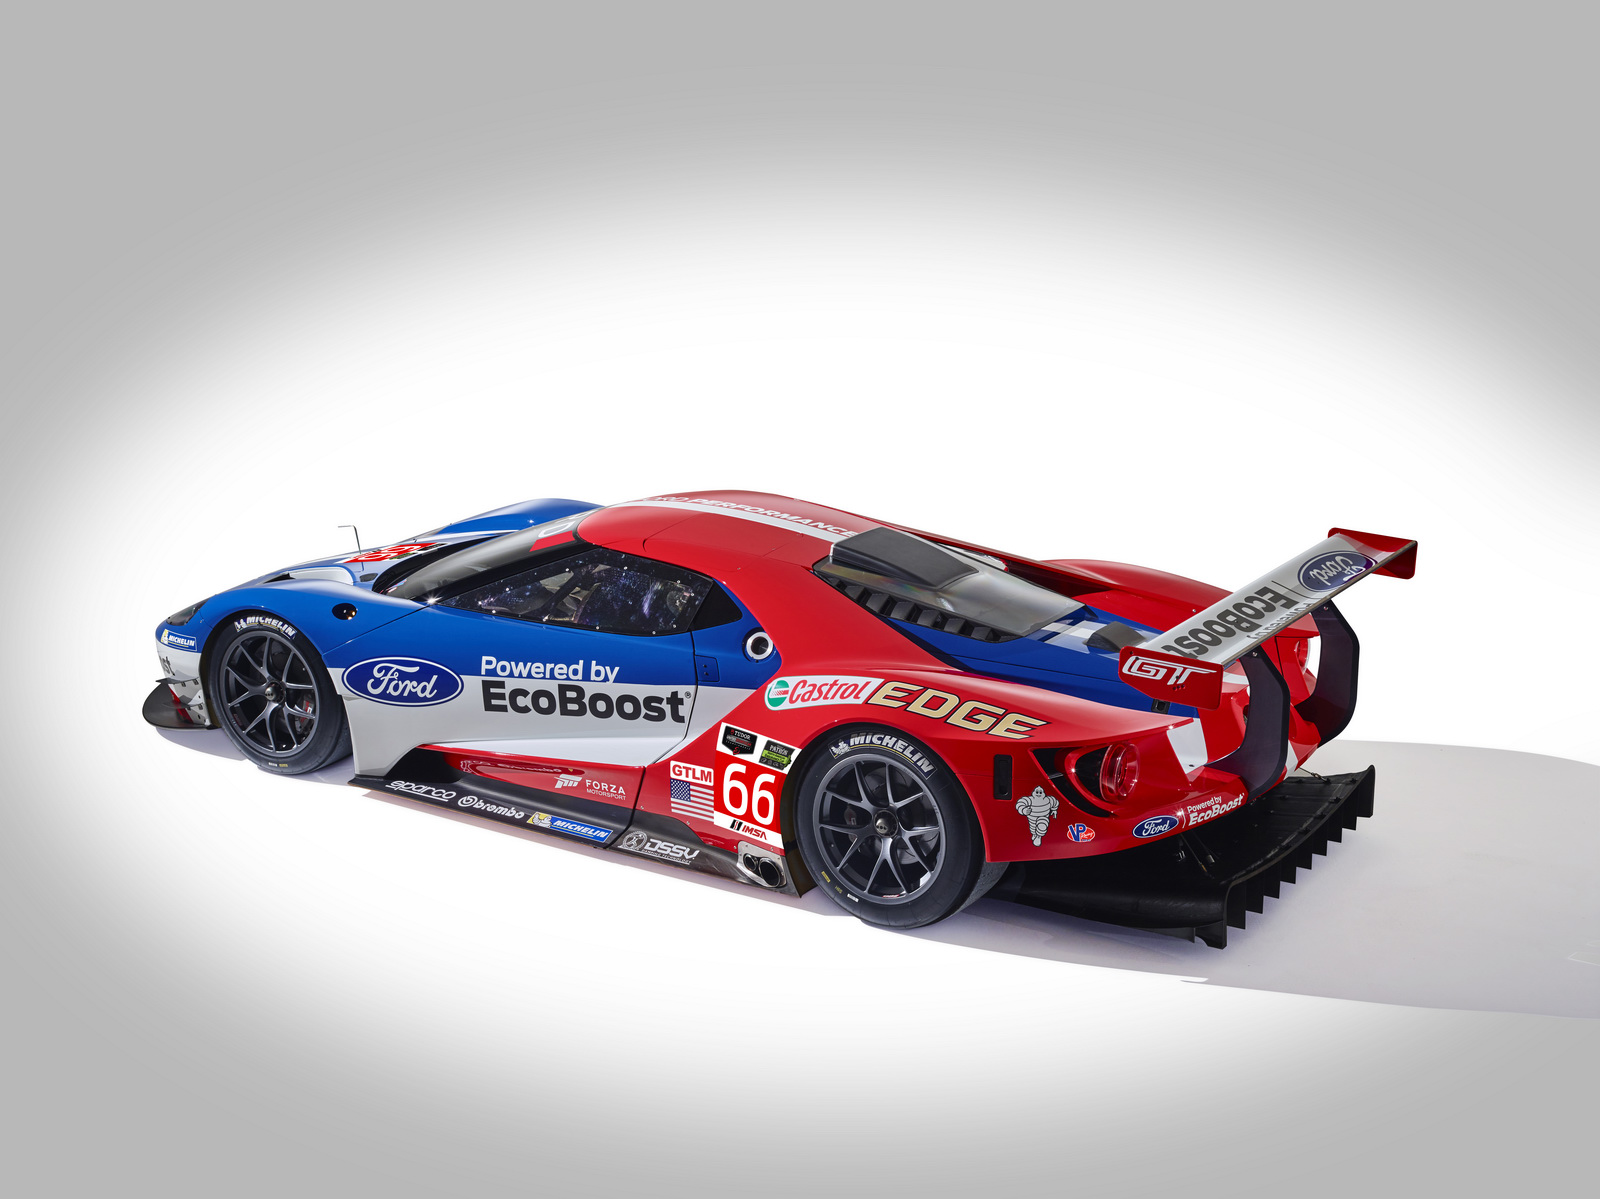 2016 ford gt gulf with Ford Gt Ecoboost Lm Gte Pro Wec Retour Aux 24h Du Mans 2016 Images Video on Ford Gt 40 1969 Alain Jamar furthermore Ford Now Taking Orders New Gt Sports Car besides 333 Ford Gt40 Wallpaper 7 moreover Porsche 917 The Best Everywhere likewise Lemans2015.